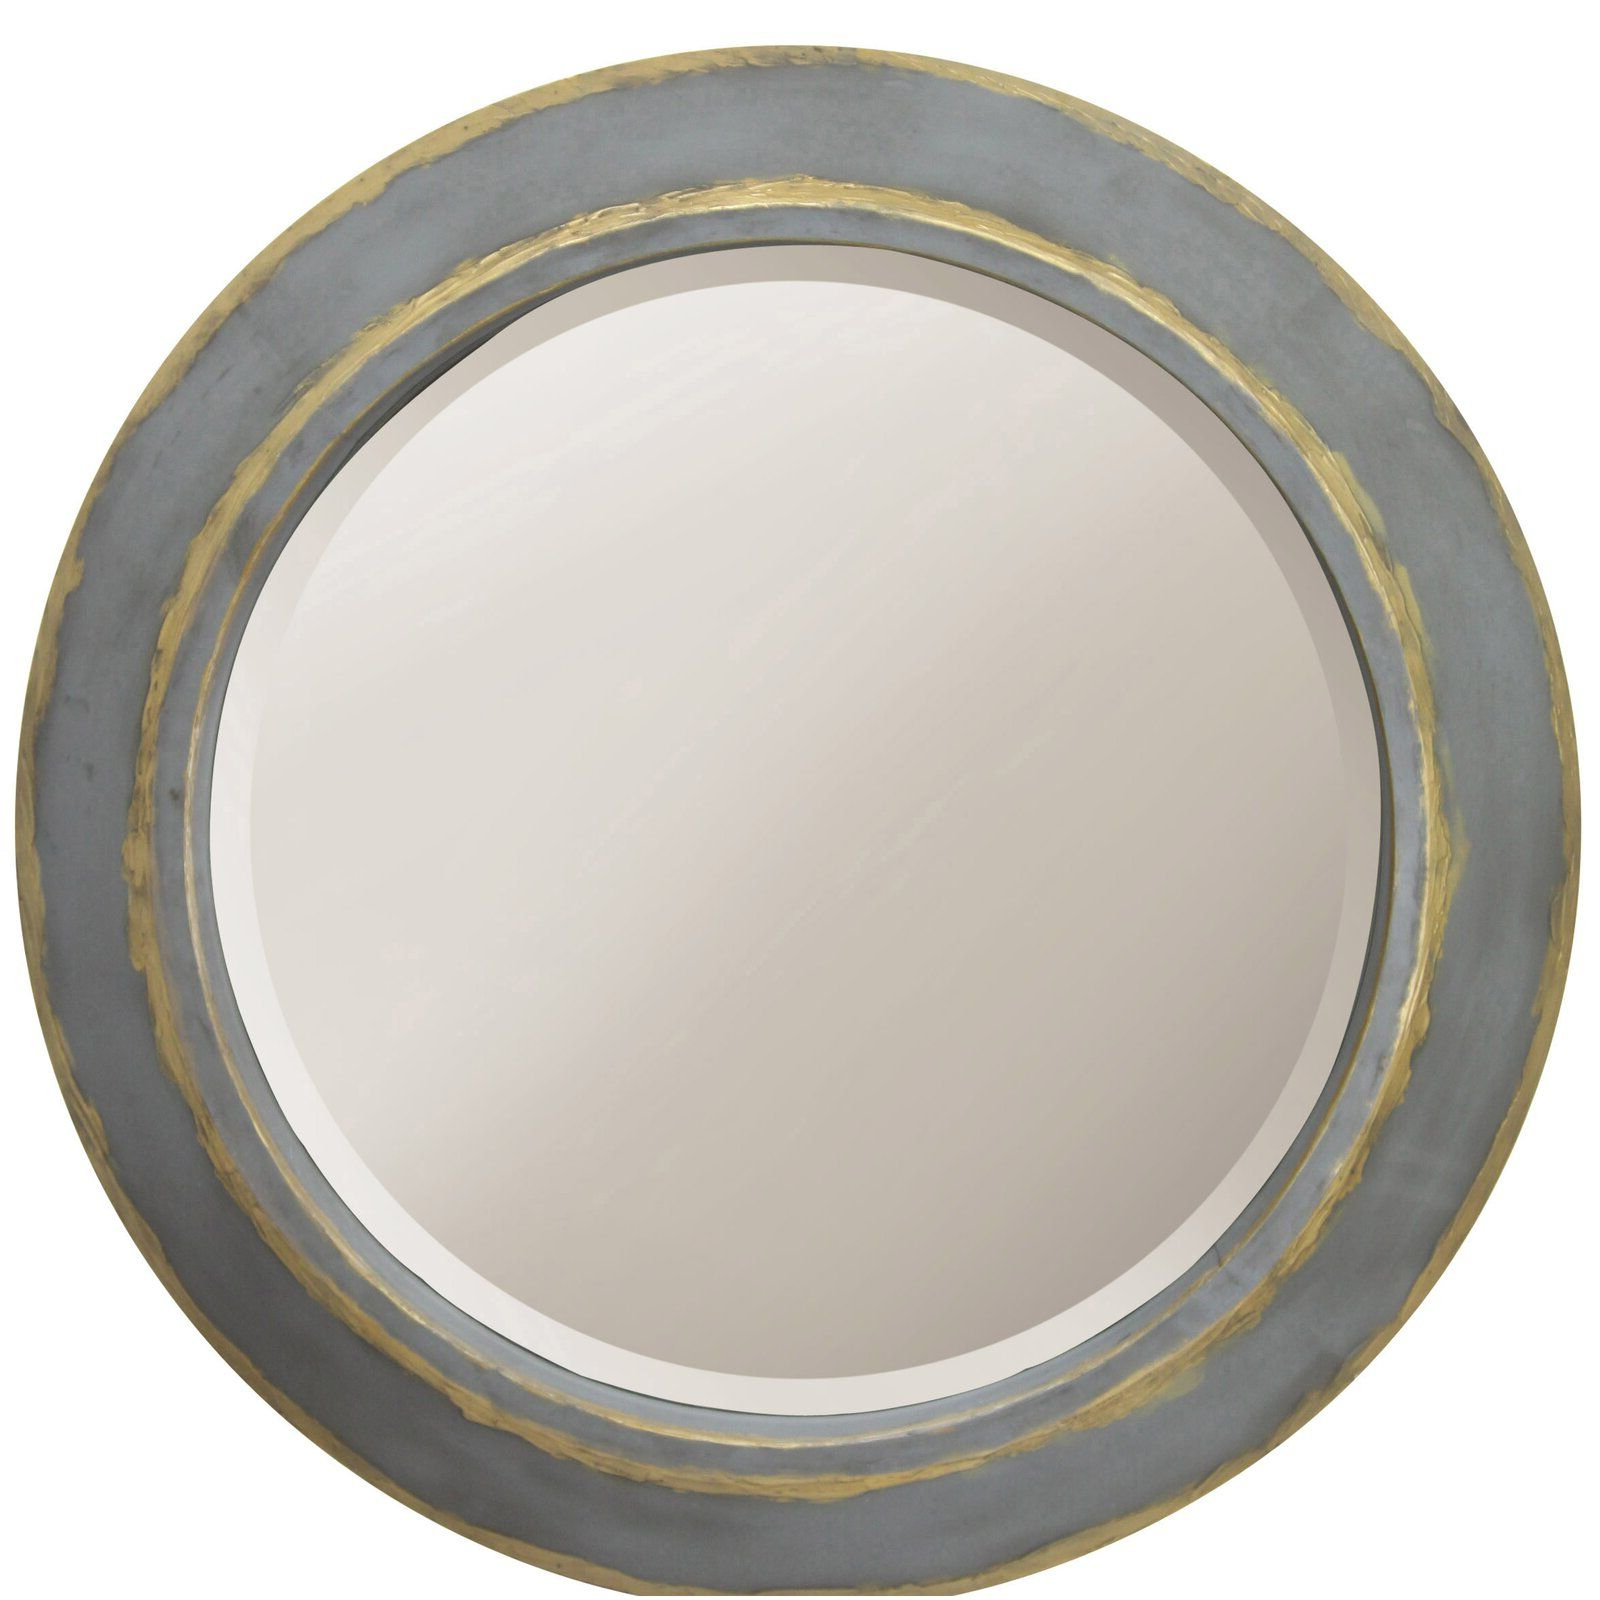 Charters Towers Accent Mirrors With Regard To Most Up To Date Peete Glass Beveled Accent Mirror In  (View 16 of 20)